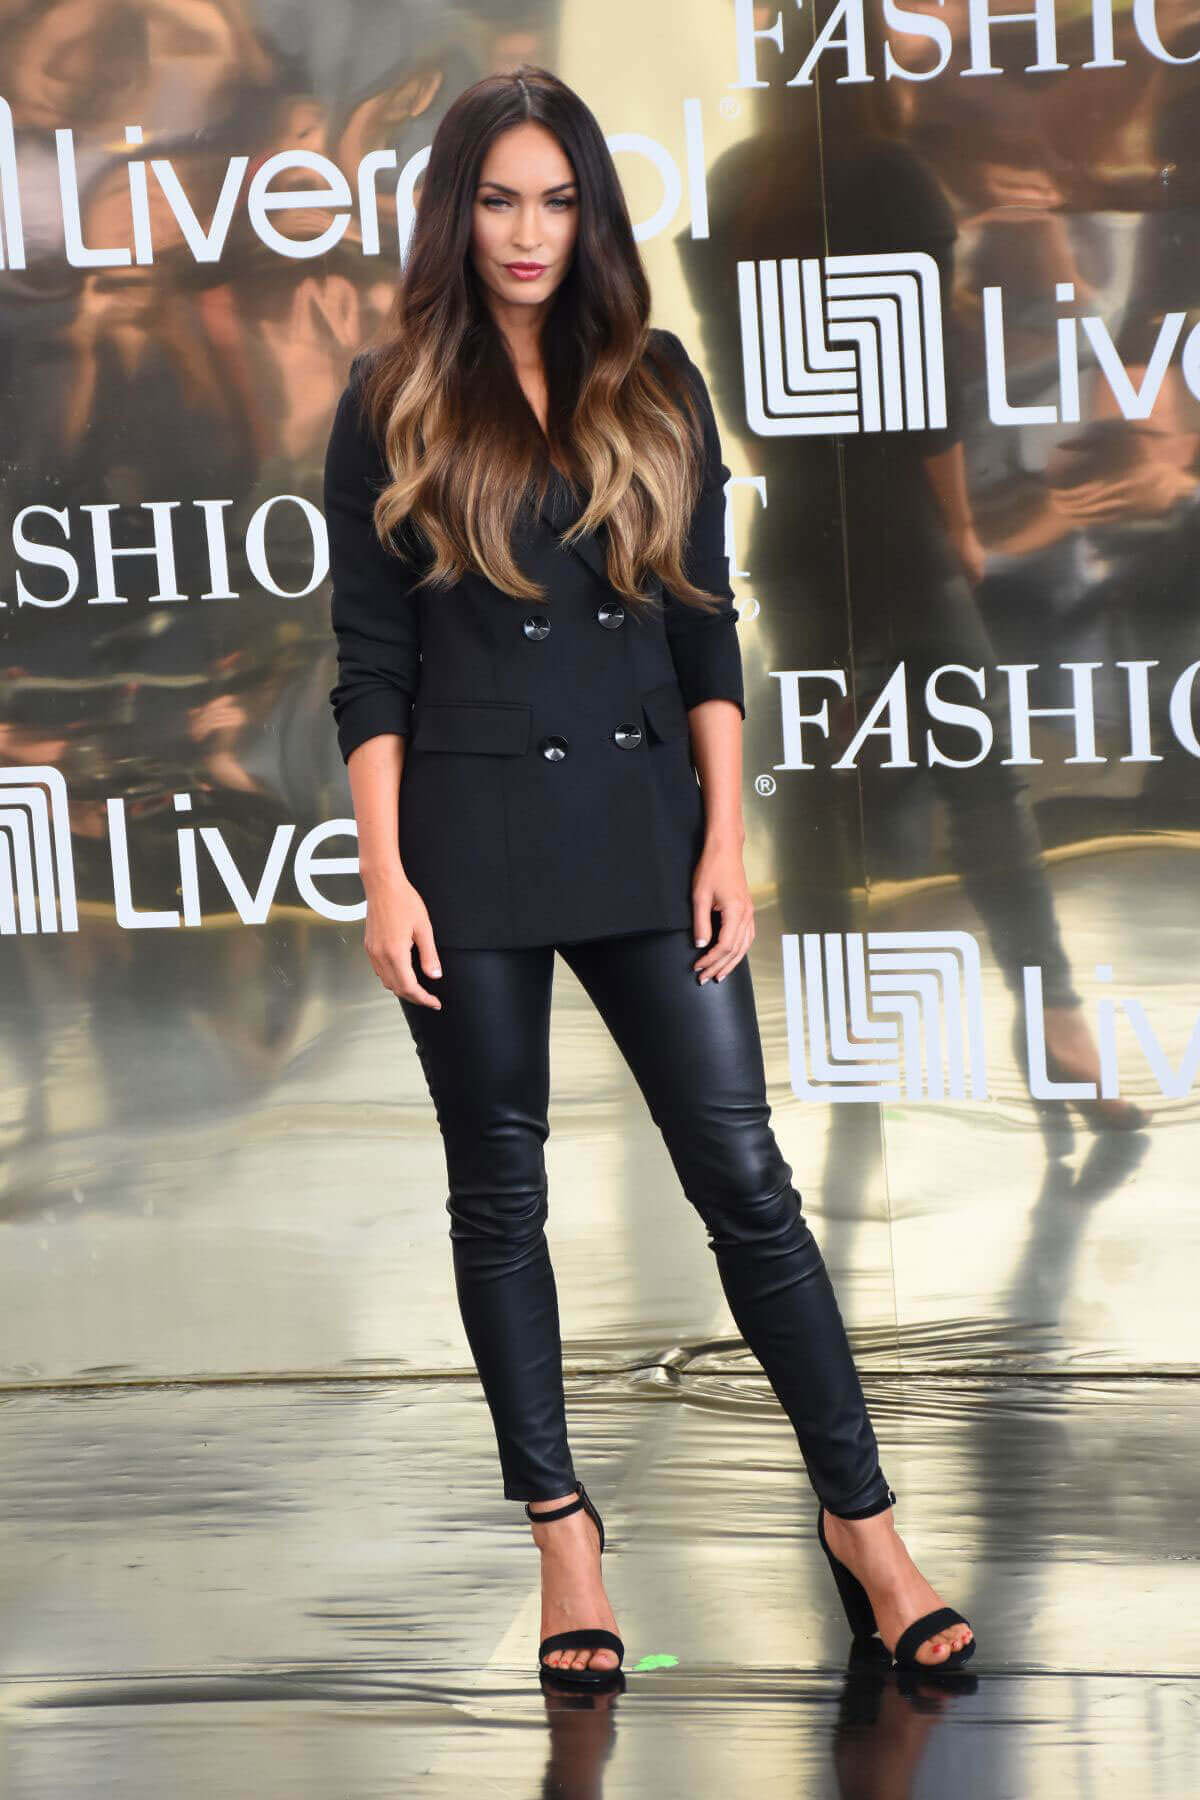 Megan Fox flaunts curves fittings at Liverpool Fashion Fest in Mexico City